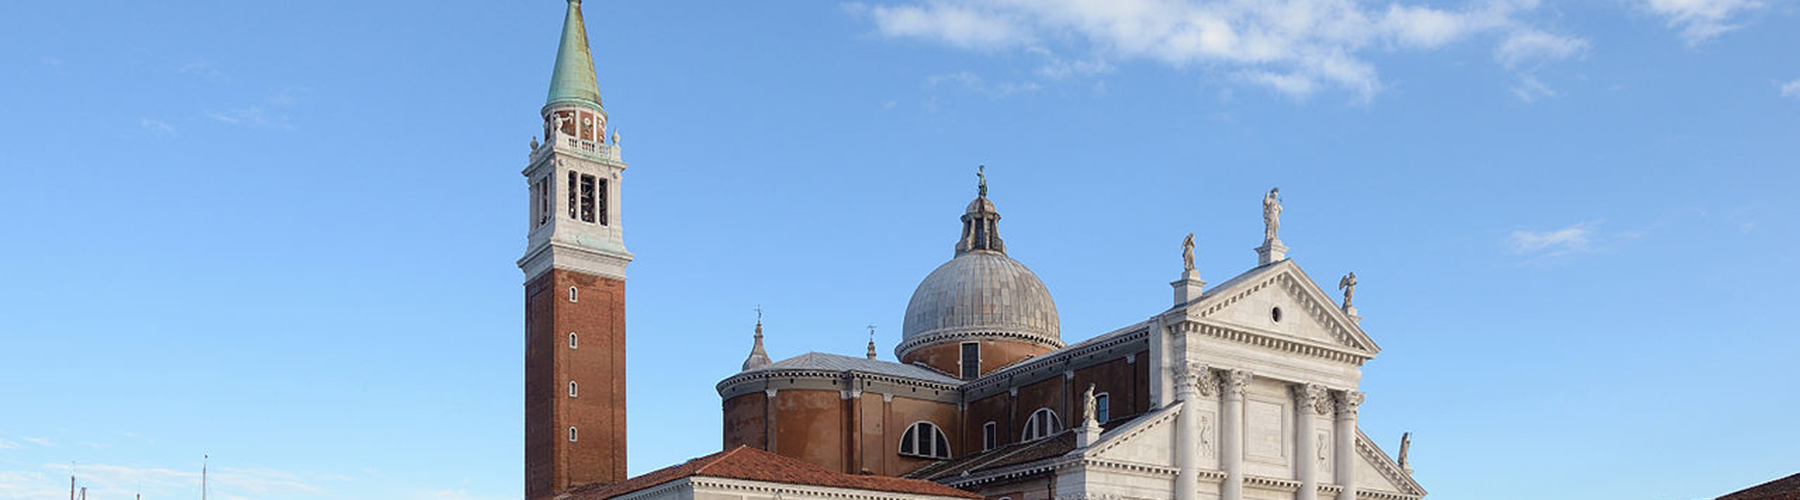 Venice – Hostels close to Church of San Giorgio Maggiore. Maps for Venice, Photos and Reviews for each hostel in Venice.